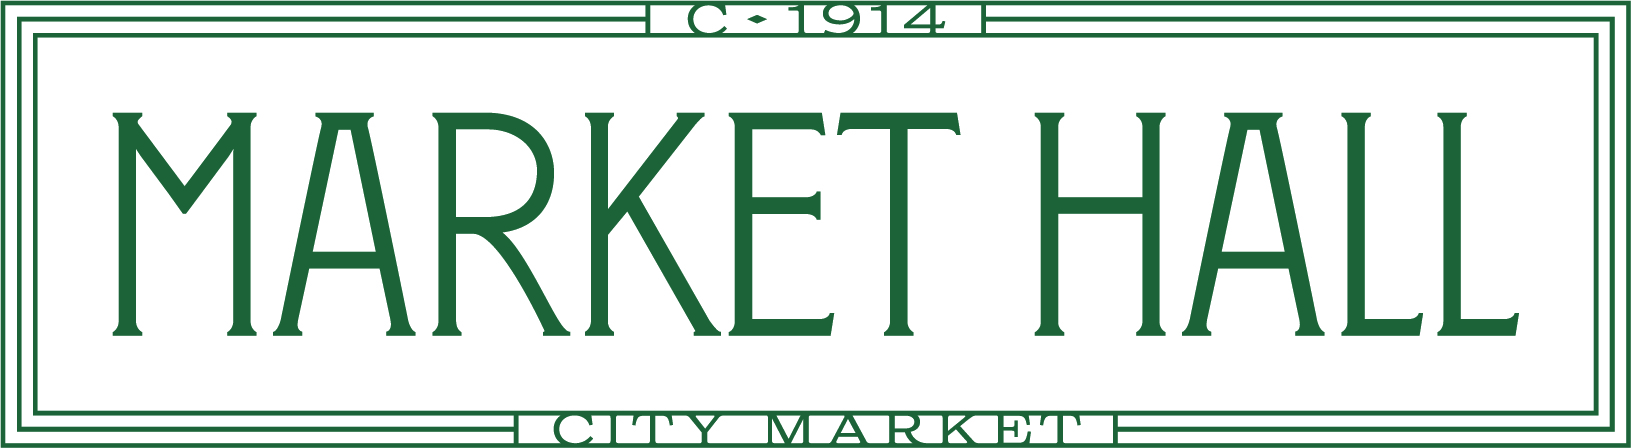 MarketHall_Primary_1914.jpg